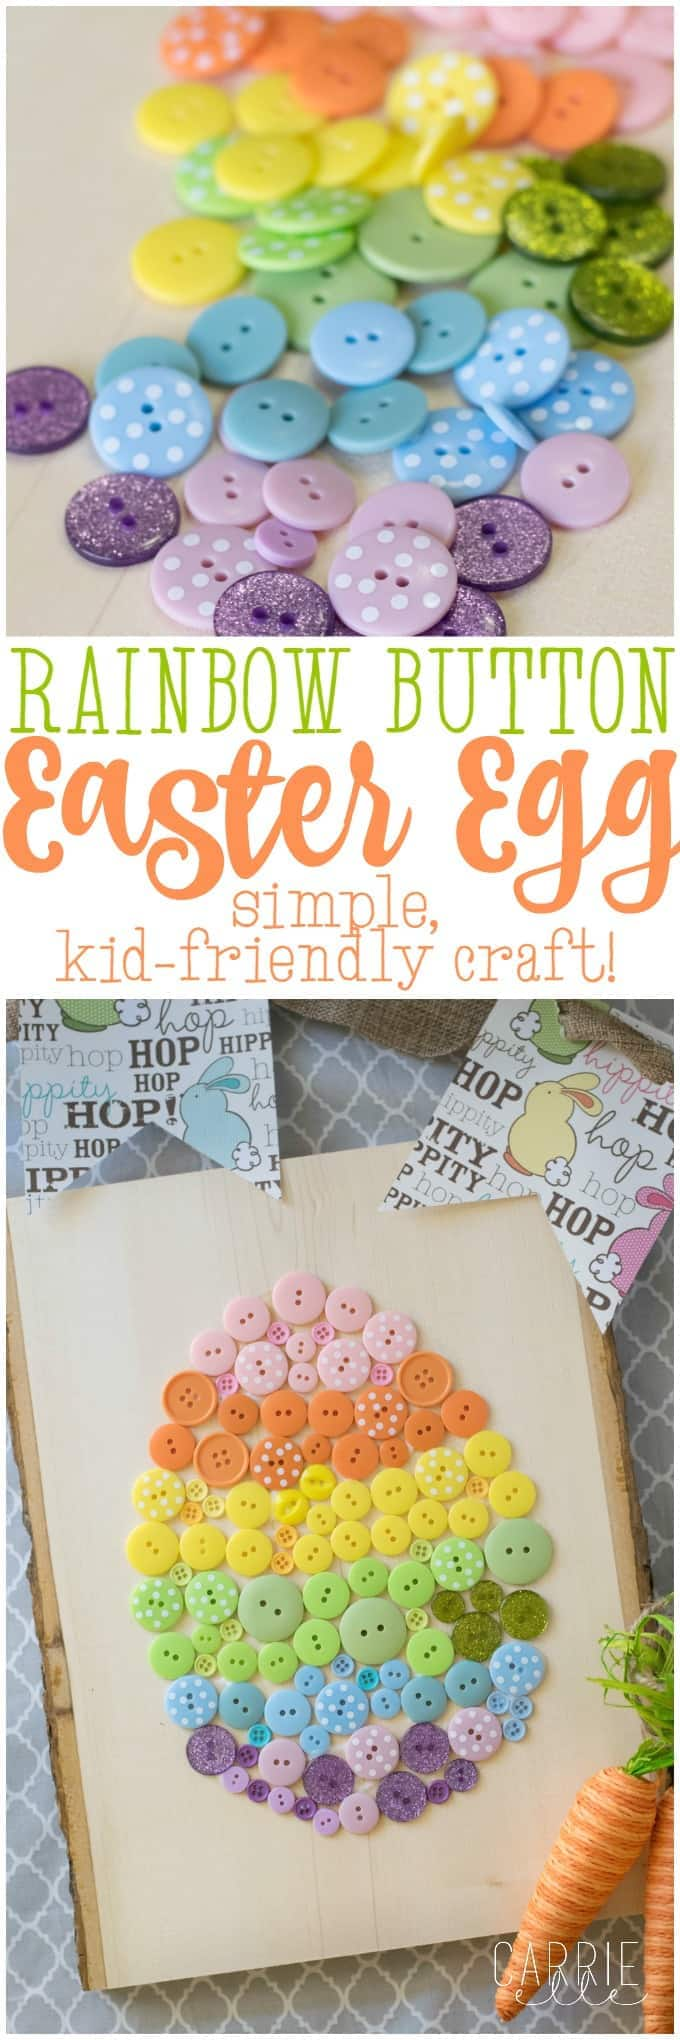 Easy Easter Craft Button Easter Egg